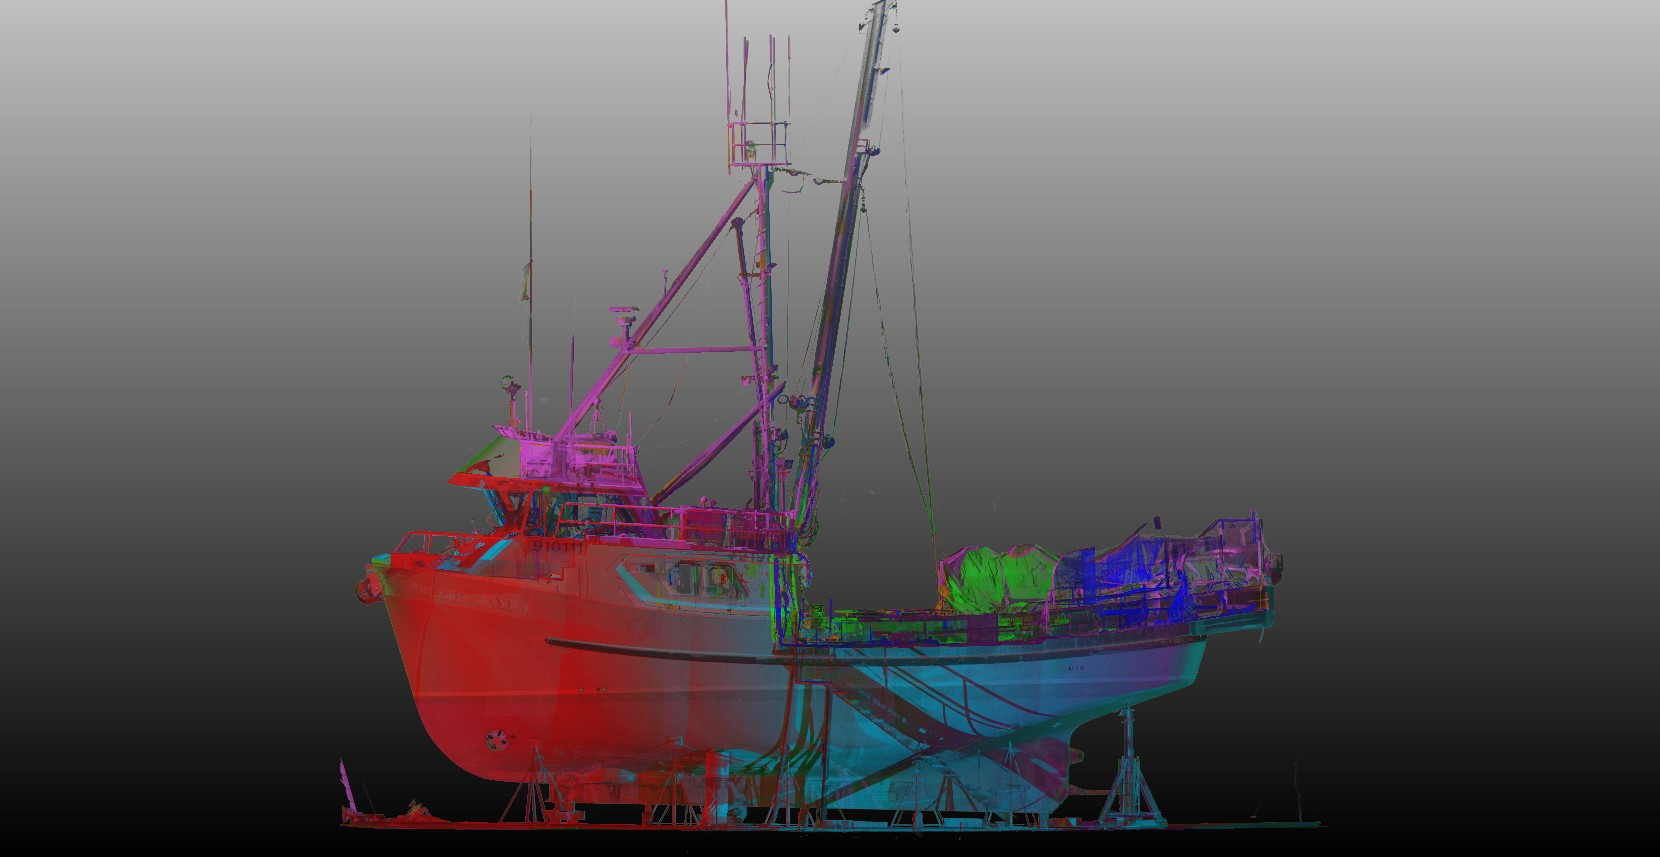 3D Laser Scan of Marine Vessel